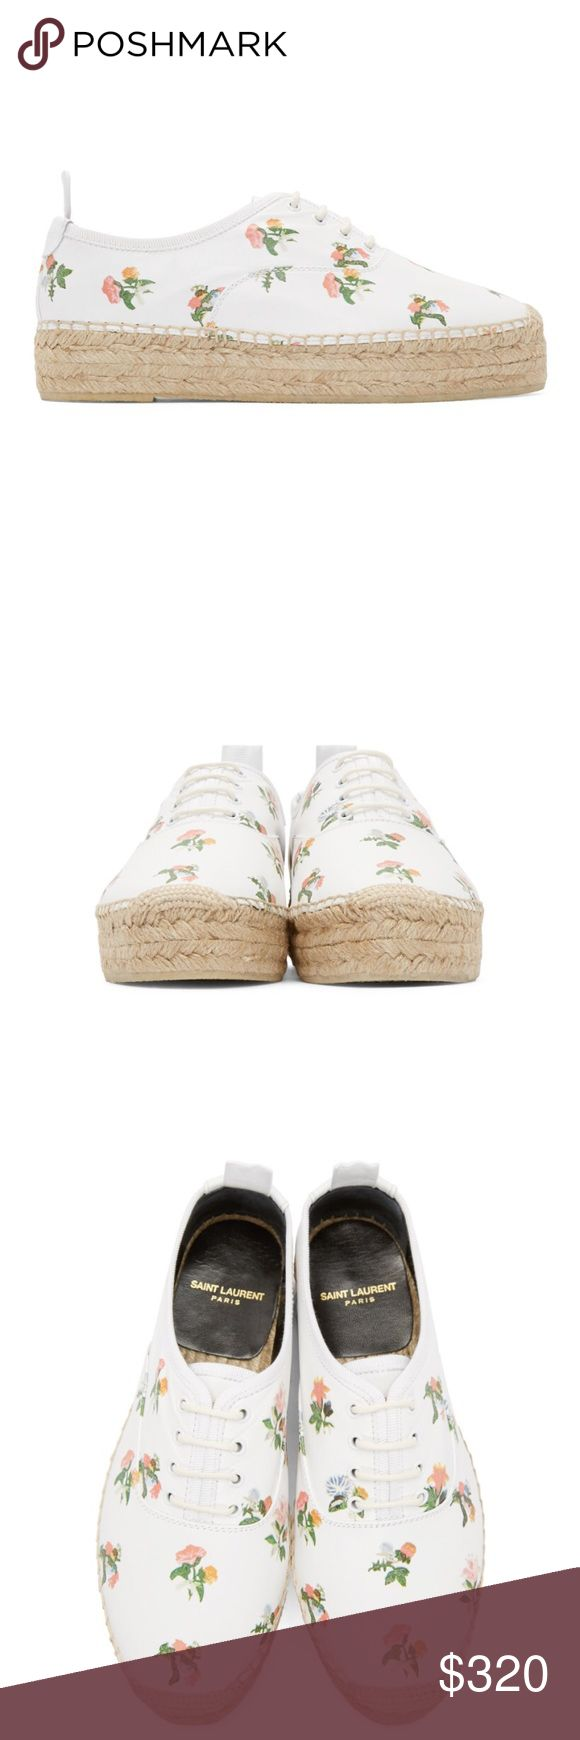 Saint Laurent Espadrille Sneakers Buffed leather espadrilles in white featuring floral pattern throughout in tones of green, pink, orange, yellow, and blue. Tonal grosgrain trim throughout. Woven toe cap in beige. Tonal lace-up closure. Grosgrain pull-tab and logo embossed at heel collar. Blanket stitching at welt. Braided jute midsole in beige. Textured rubber sole in beige. Tonal stitching. Upper: leather. Sole: rubber. Made in Spain. * NEW, UNWORN AND COME WITH BOX. Make an offer. 💕…